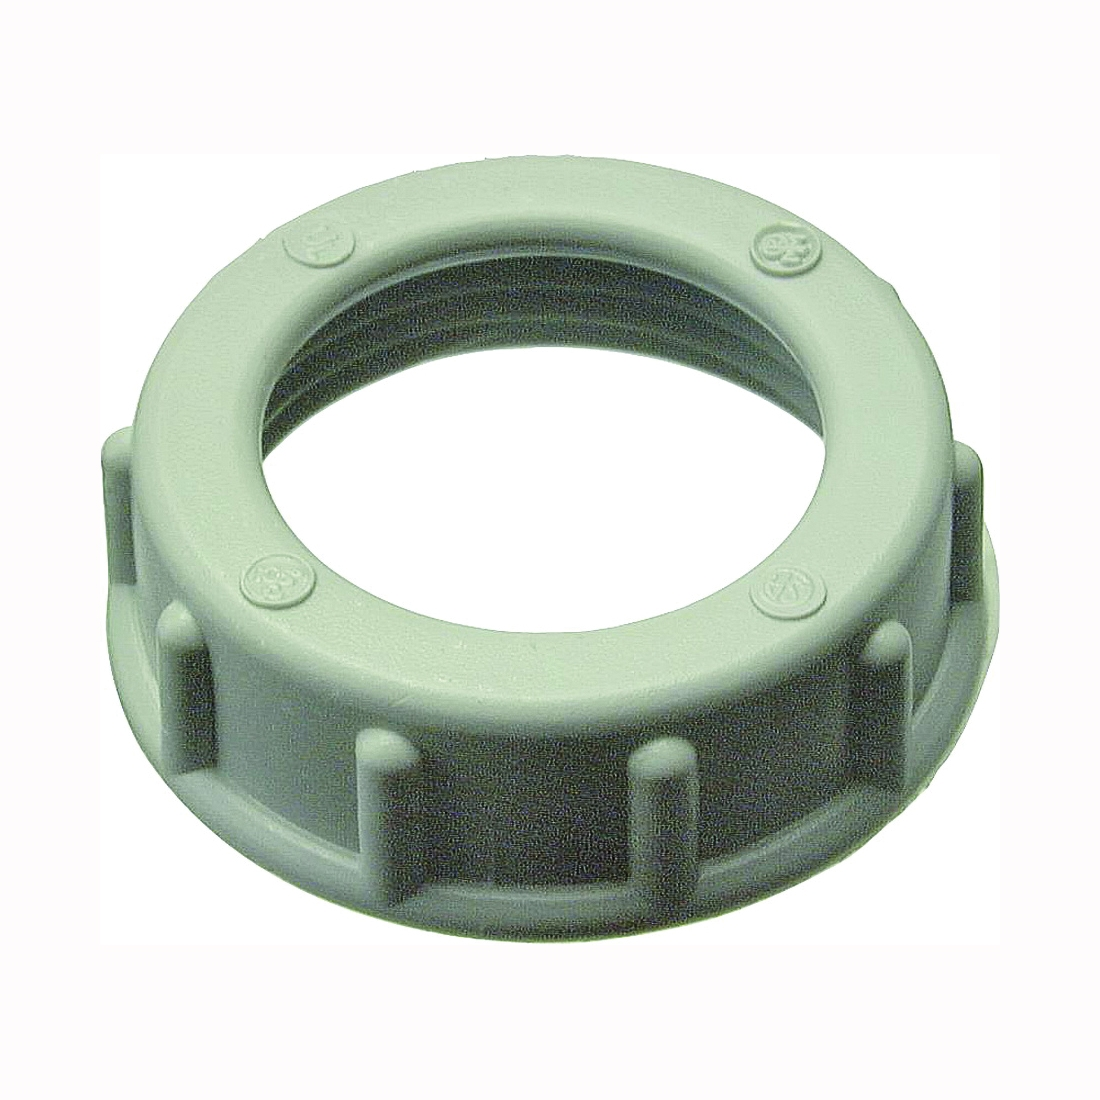 Picture of Halex 97523 Conduit Bushing, 1 in Trade, Thermoplastic